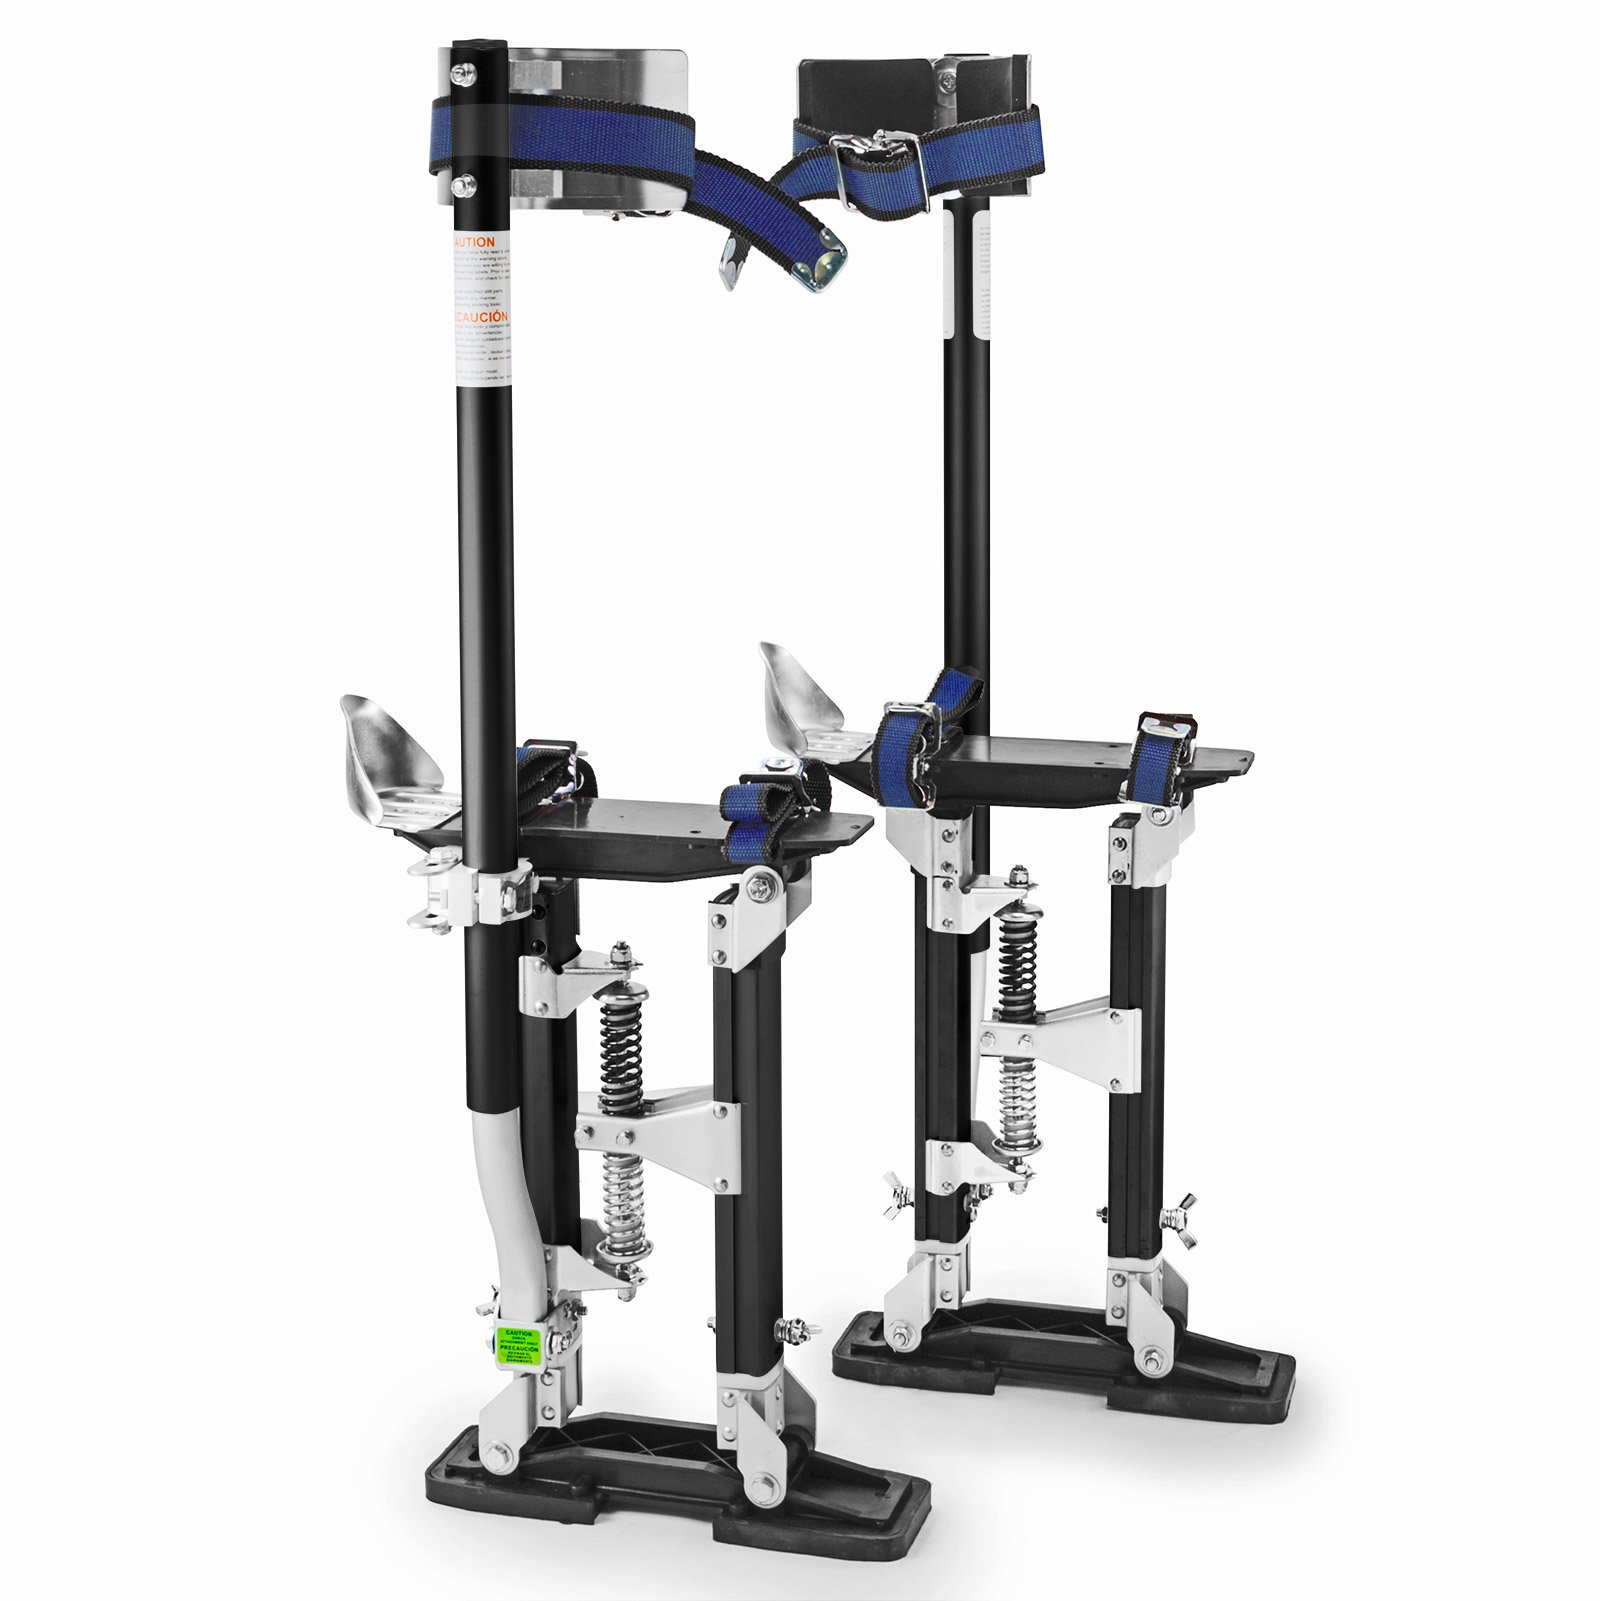 GypTool Pro 15'' - 23'' Drywall Stilts - Black by GypTool